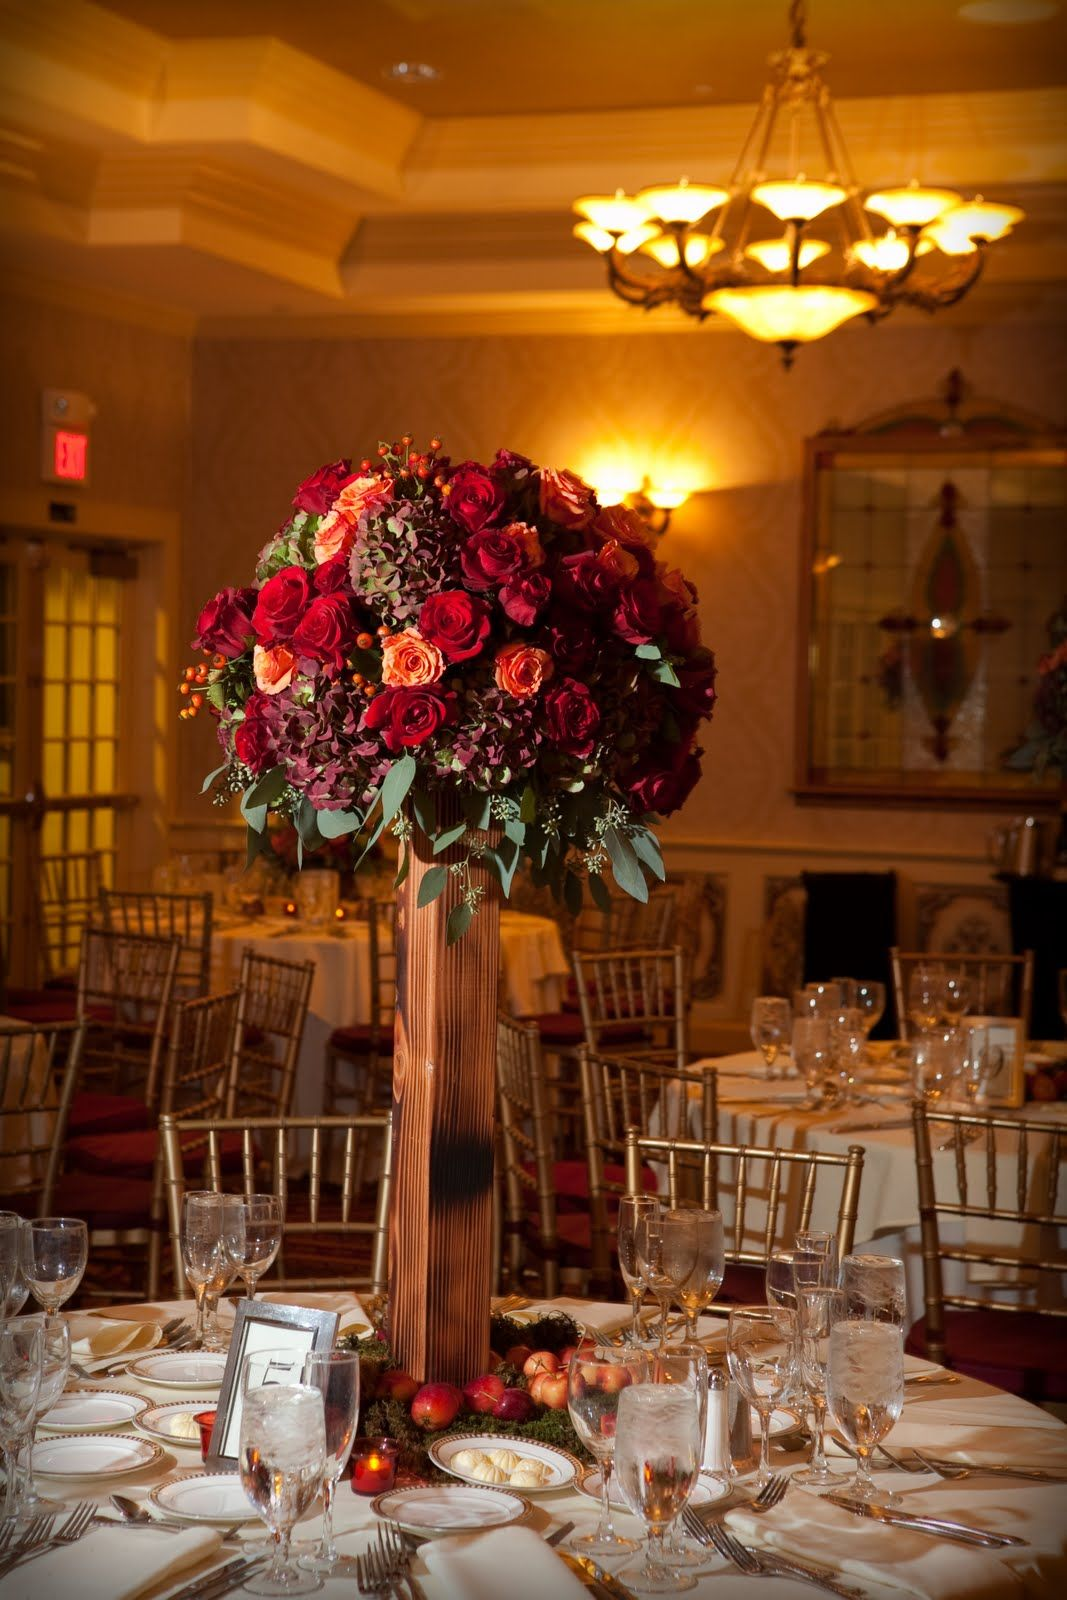 Custom created centerpieces with a rustic wooden base were